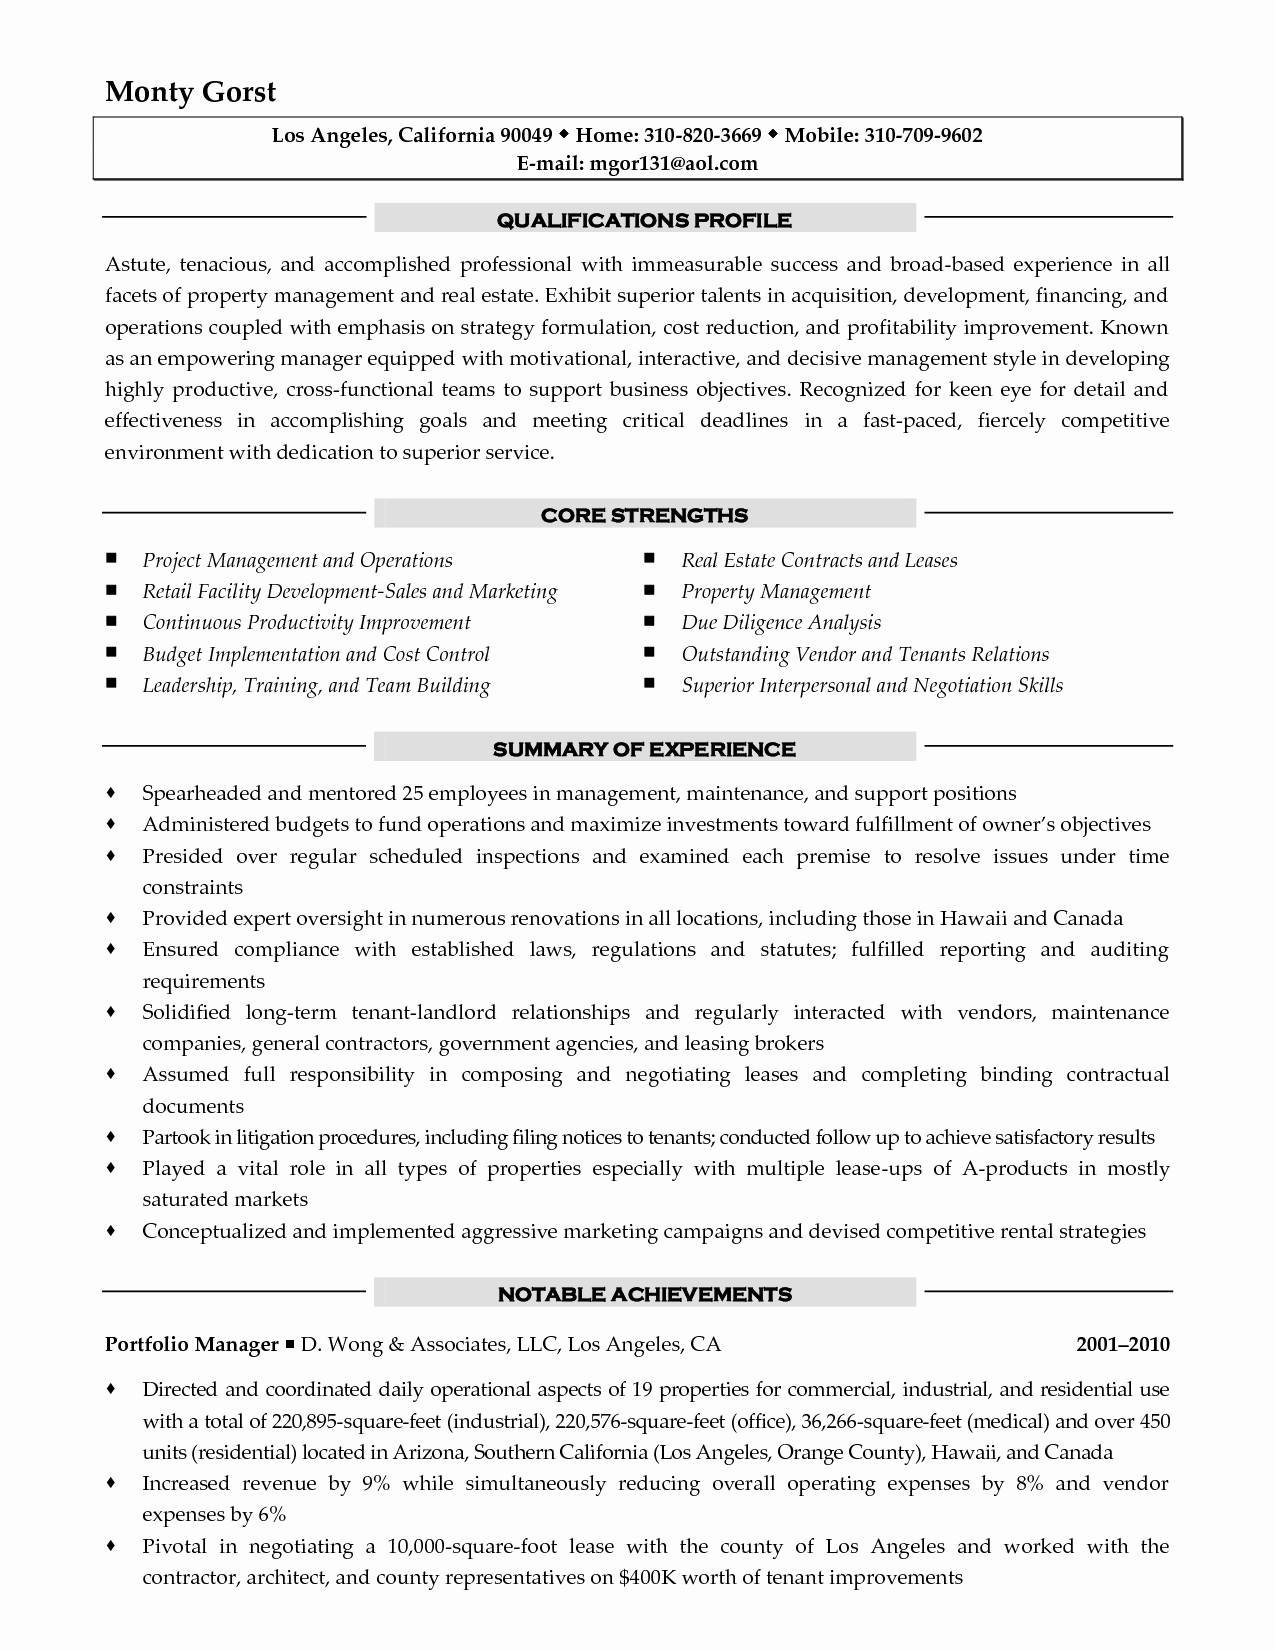 Residential Property Manager Resume Sample - Apartment Maintenance Supervisor Resume Beautiful Apartment Property